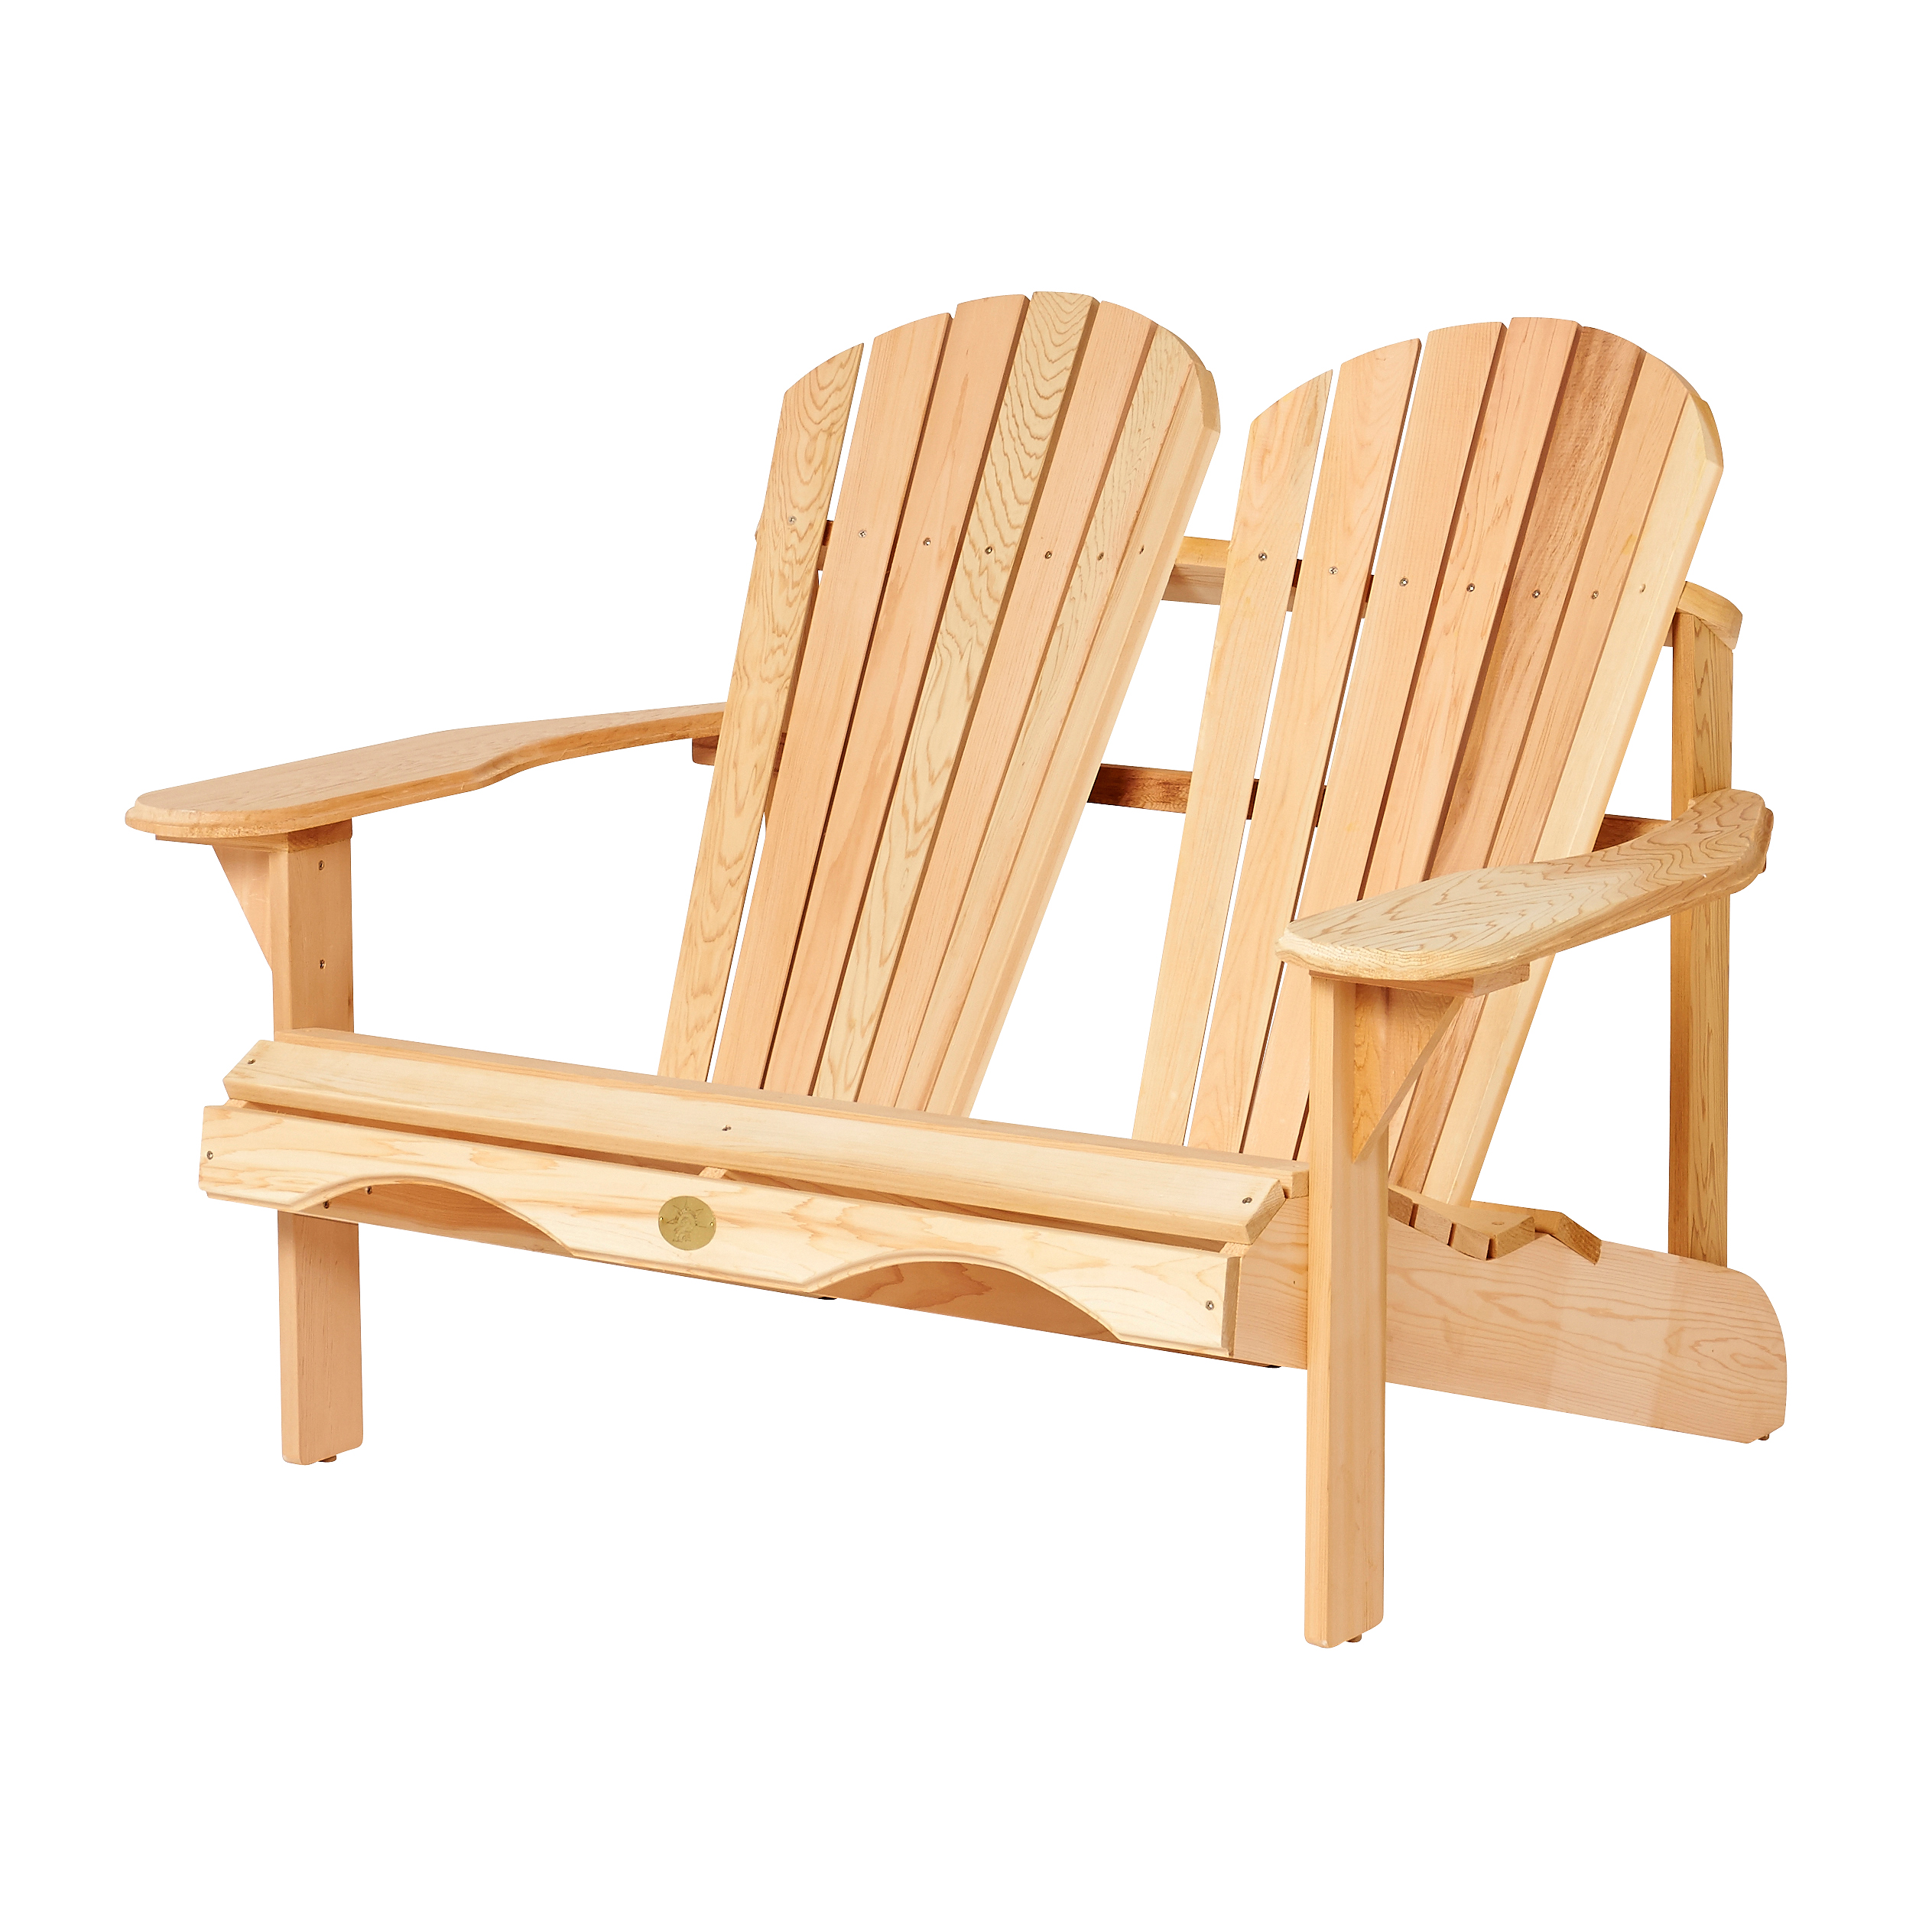 Bear Chair Love-Seat / Päärchen-Sitz BC800C